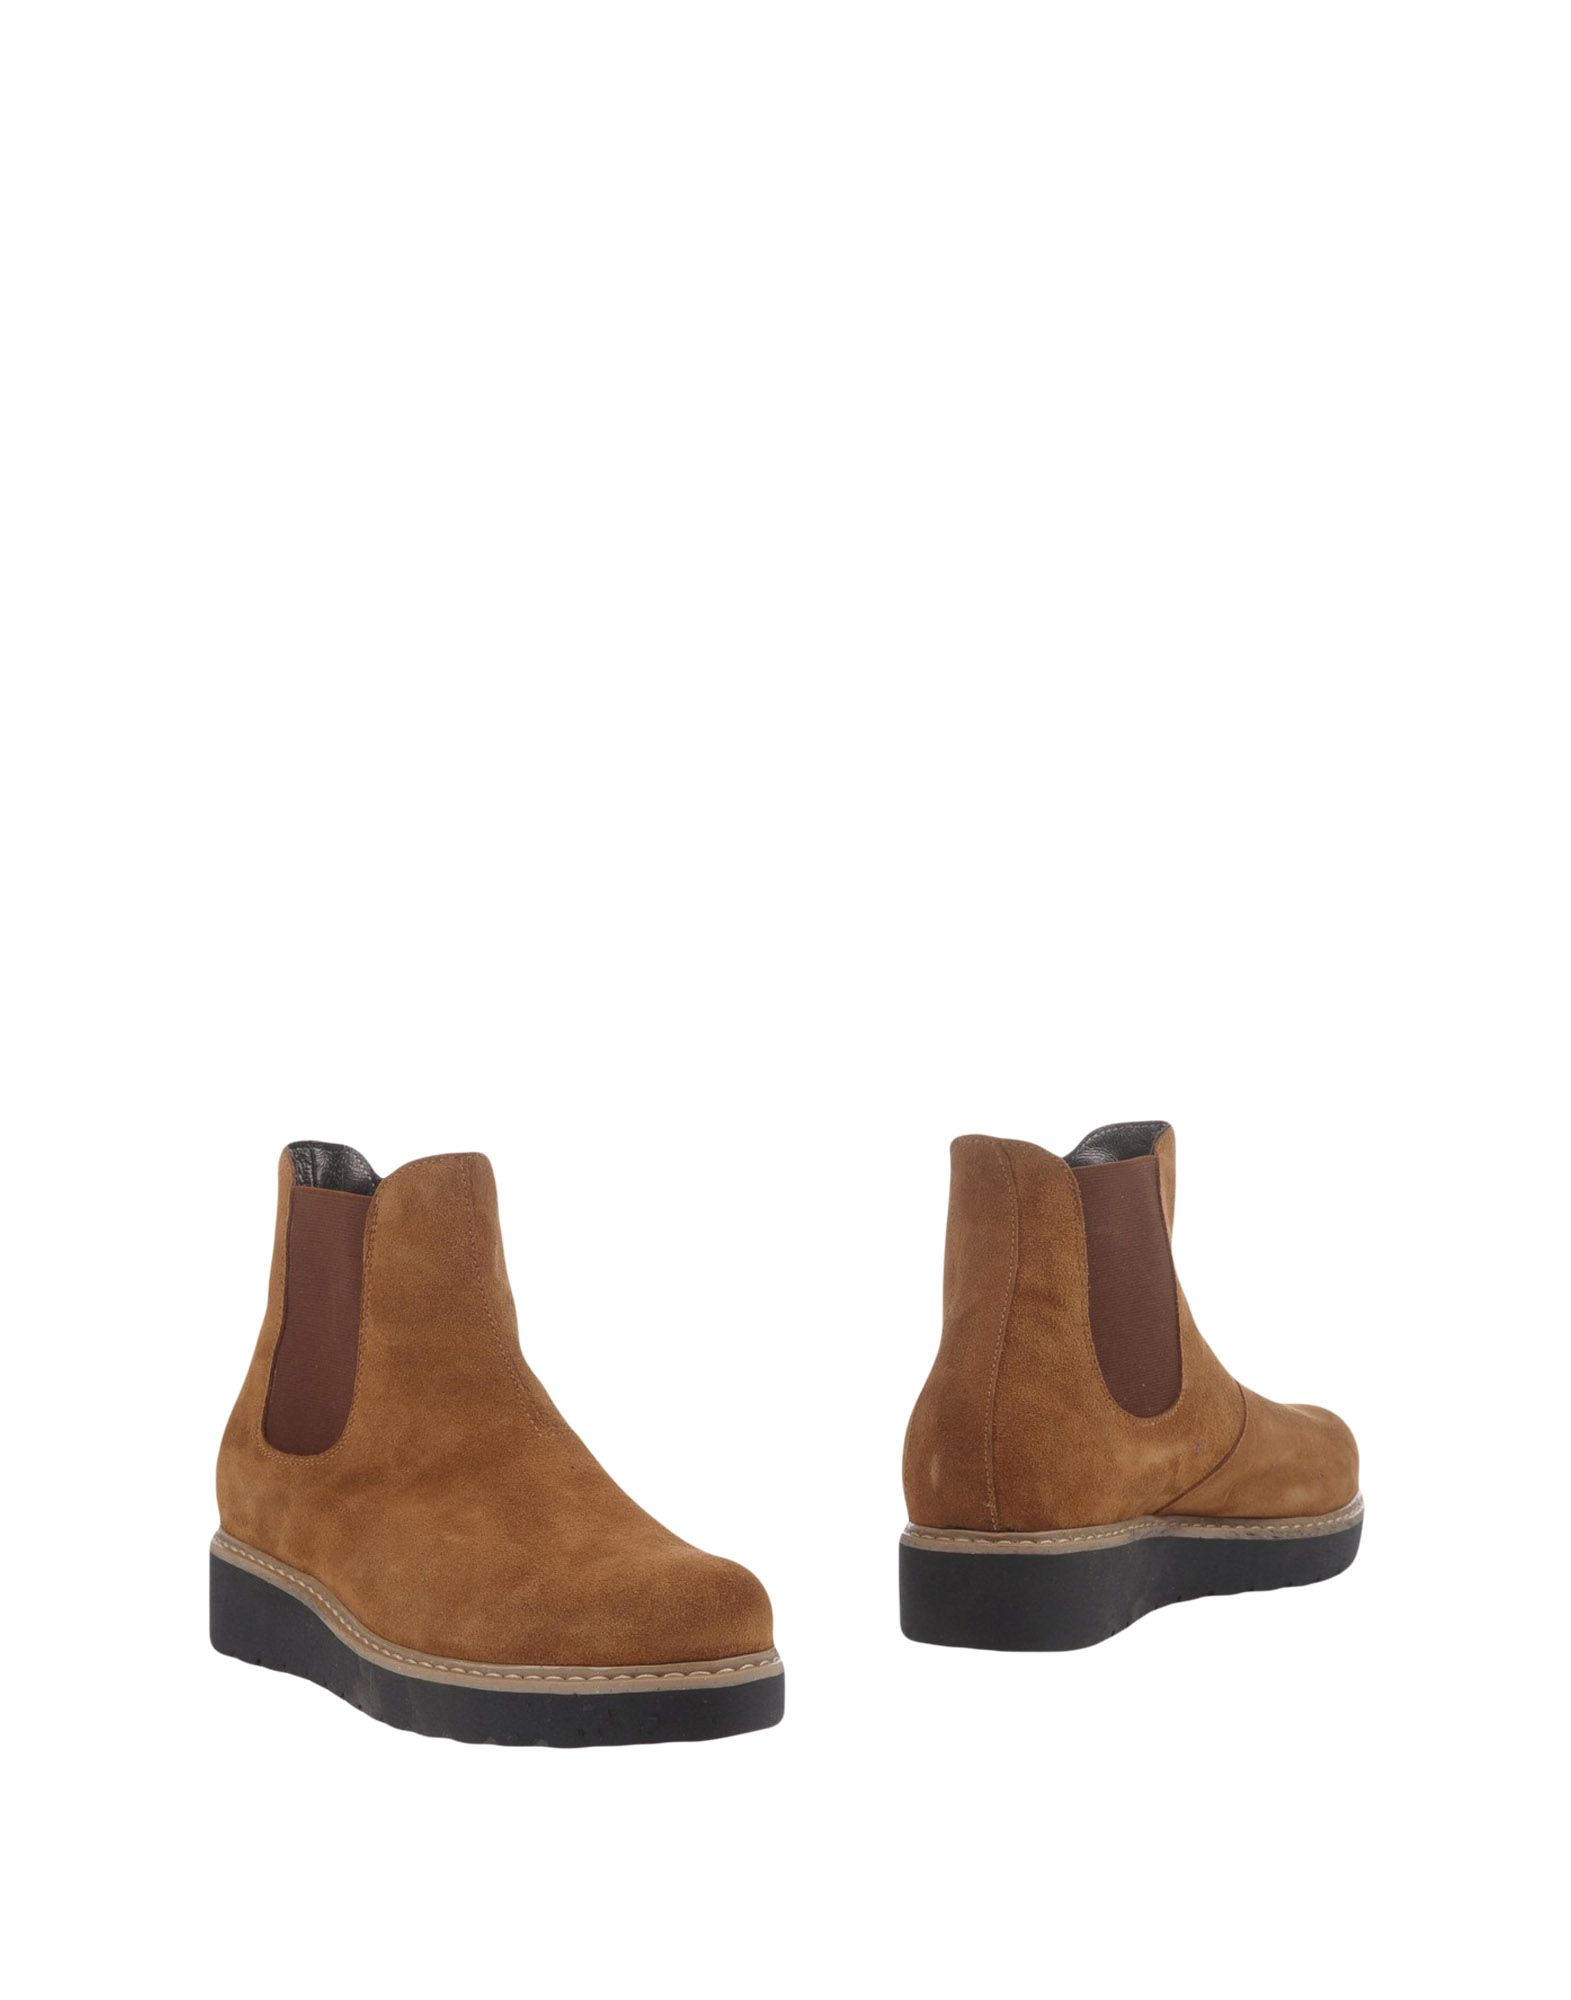 Chelsea Boots Tsd12 Donna - 11211356TO